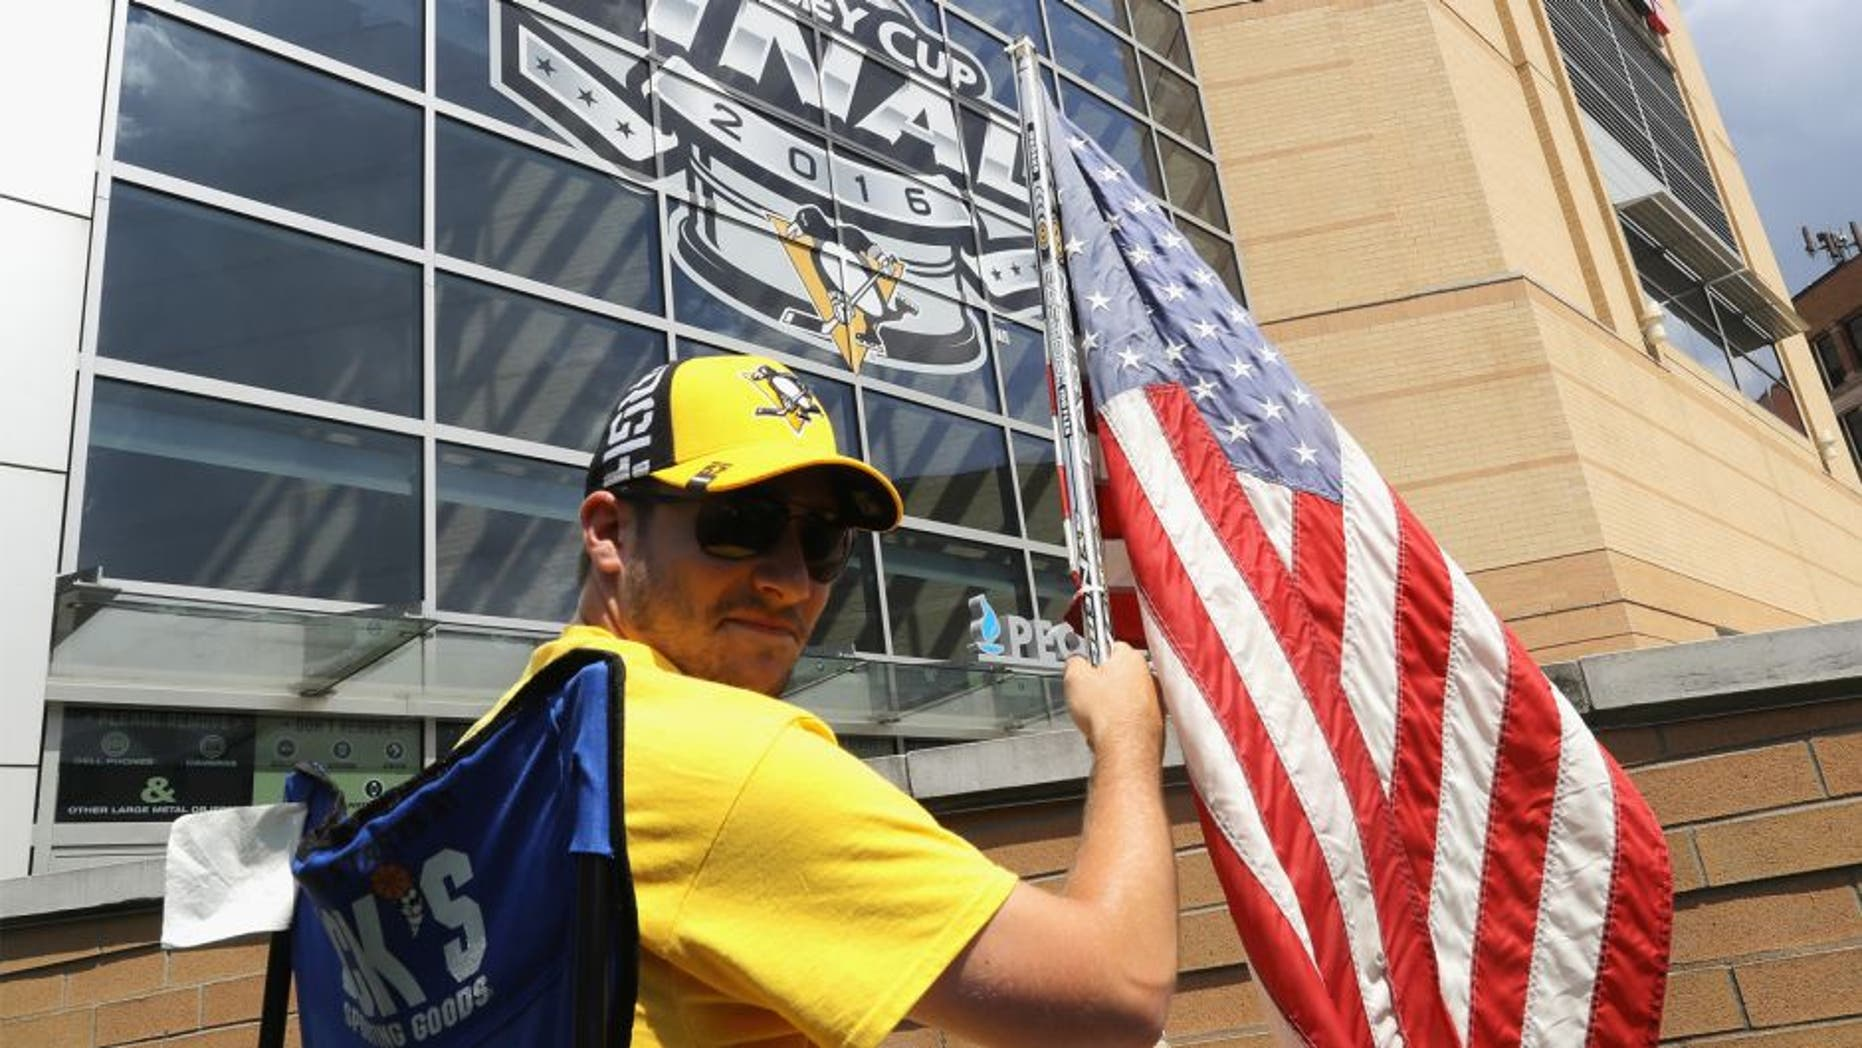 Pittsburgh Penguins fan Nick Comito of Greensburg, PA poses outside of Consol Energy Center prior to Game One of the 2016 NHL Stanley Cup Final between the Pittsburgh Penguins and the San Jose Sharks on May 30, 2016 in Pittsburgh, Pennsylvania. (Photo by Bruce Bennett/Getty Images)